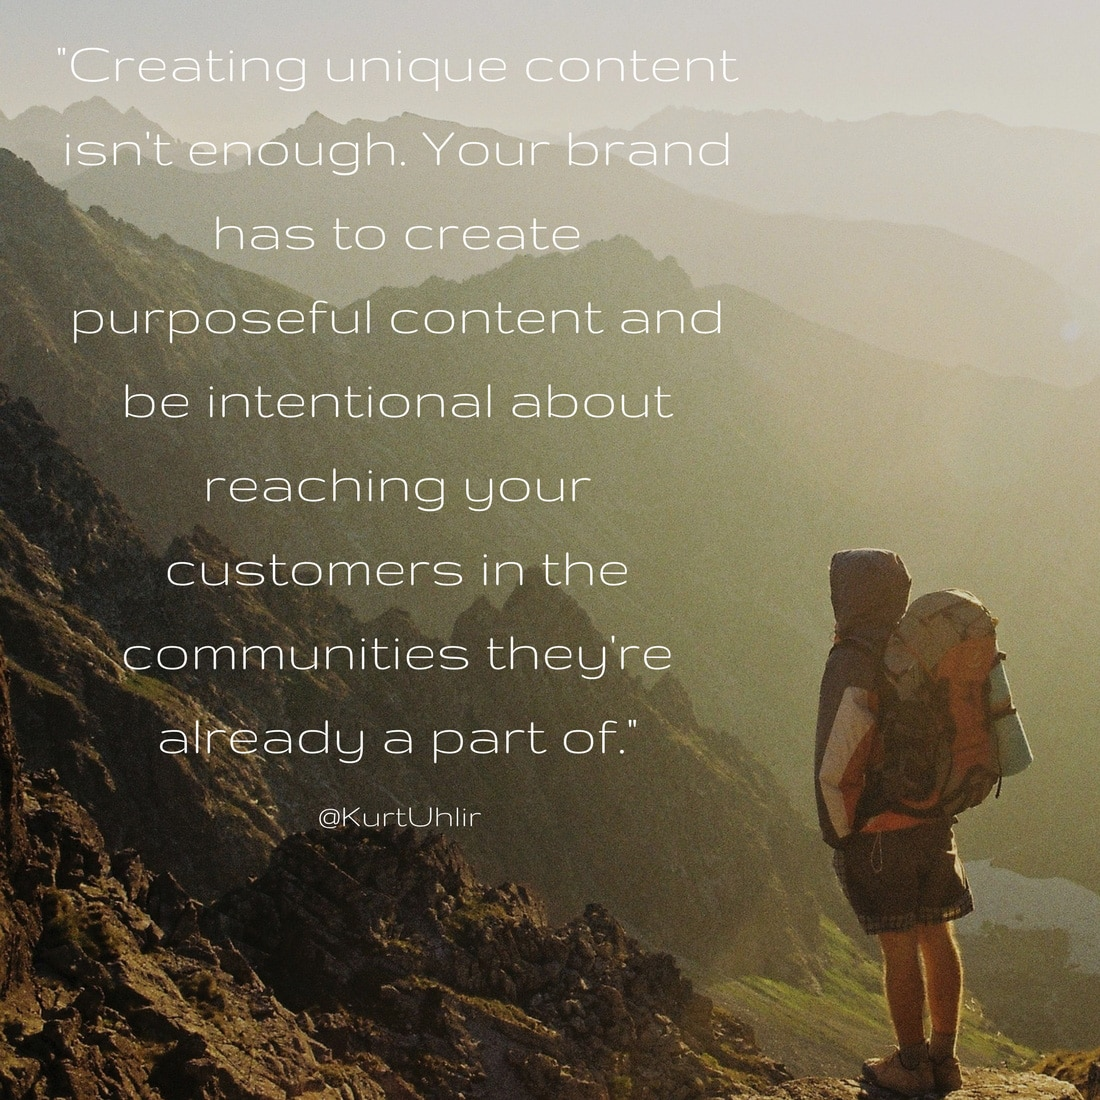 Creating unique content isn't enough. Your brand has to create purposeful content and be intentional about reaching your customers in the communities they're already a part of - Kurt Uhlir marketing quote | Influencer Marketing | Influencers